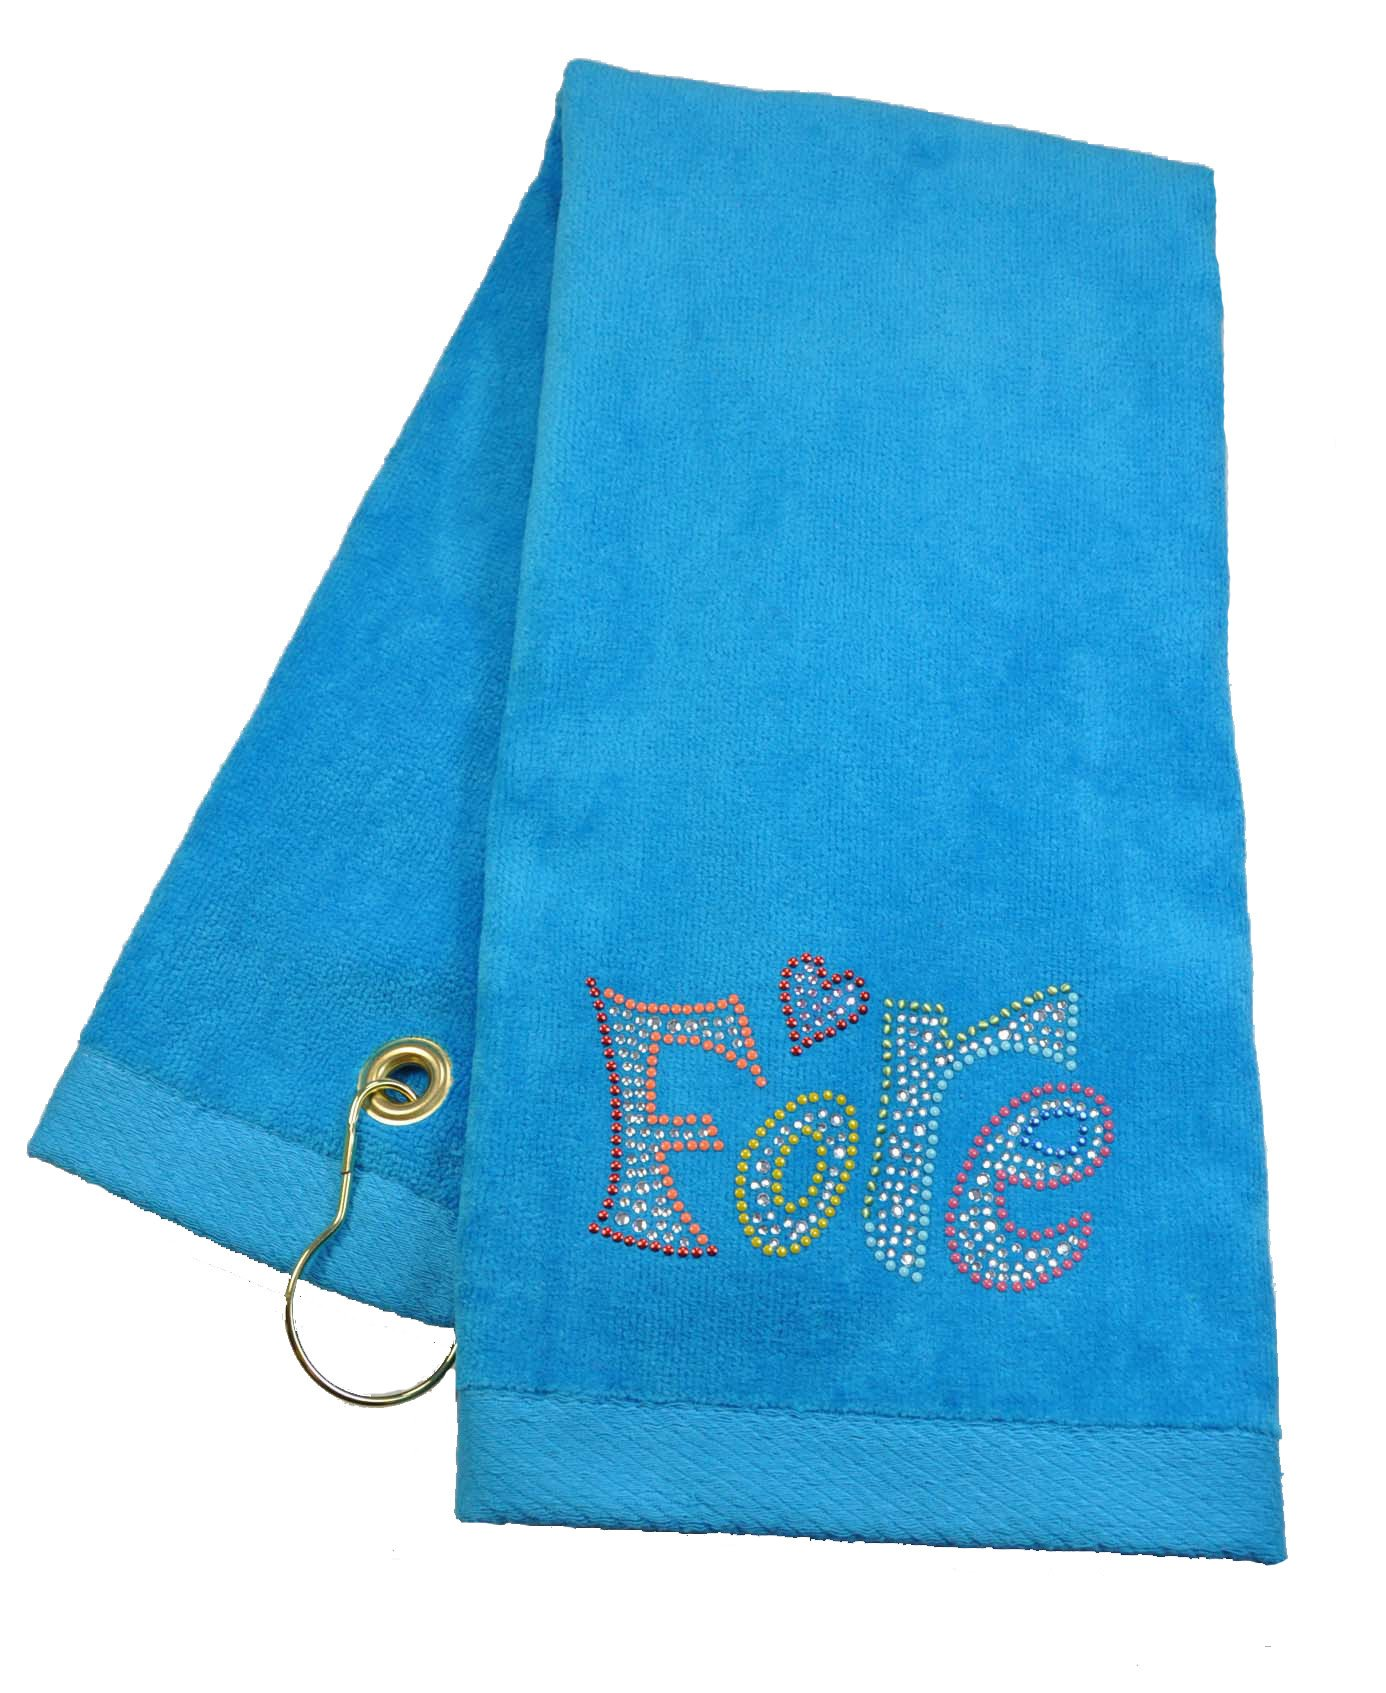 Navika Turquoise Fore Towel Accented with Crystals